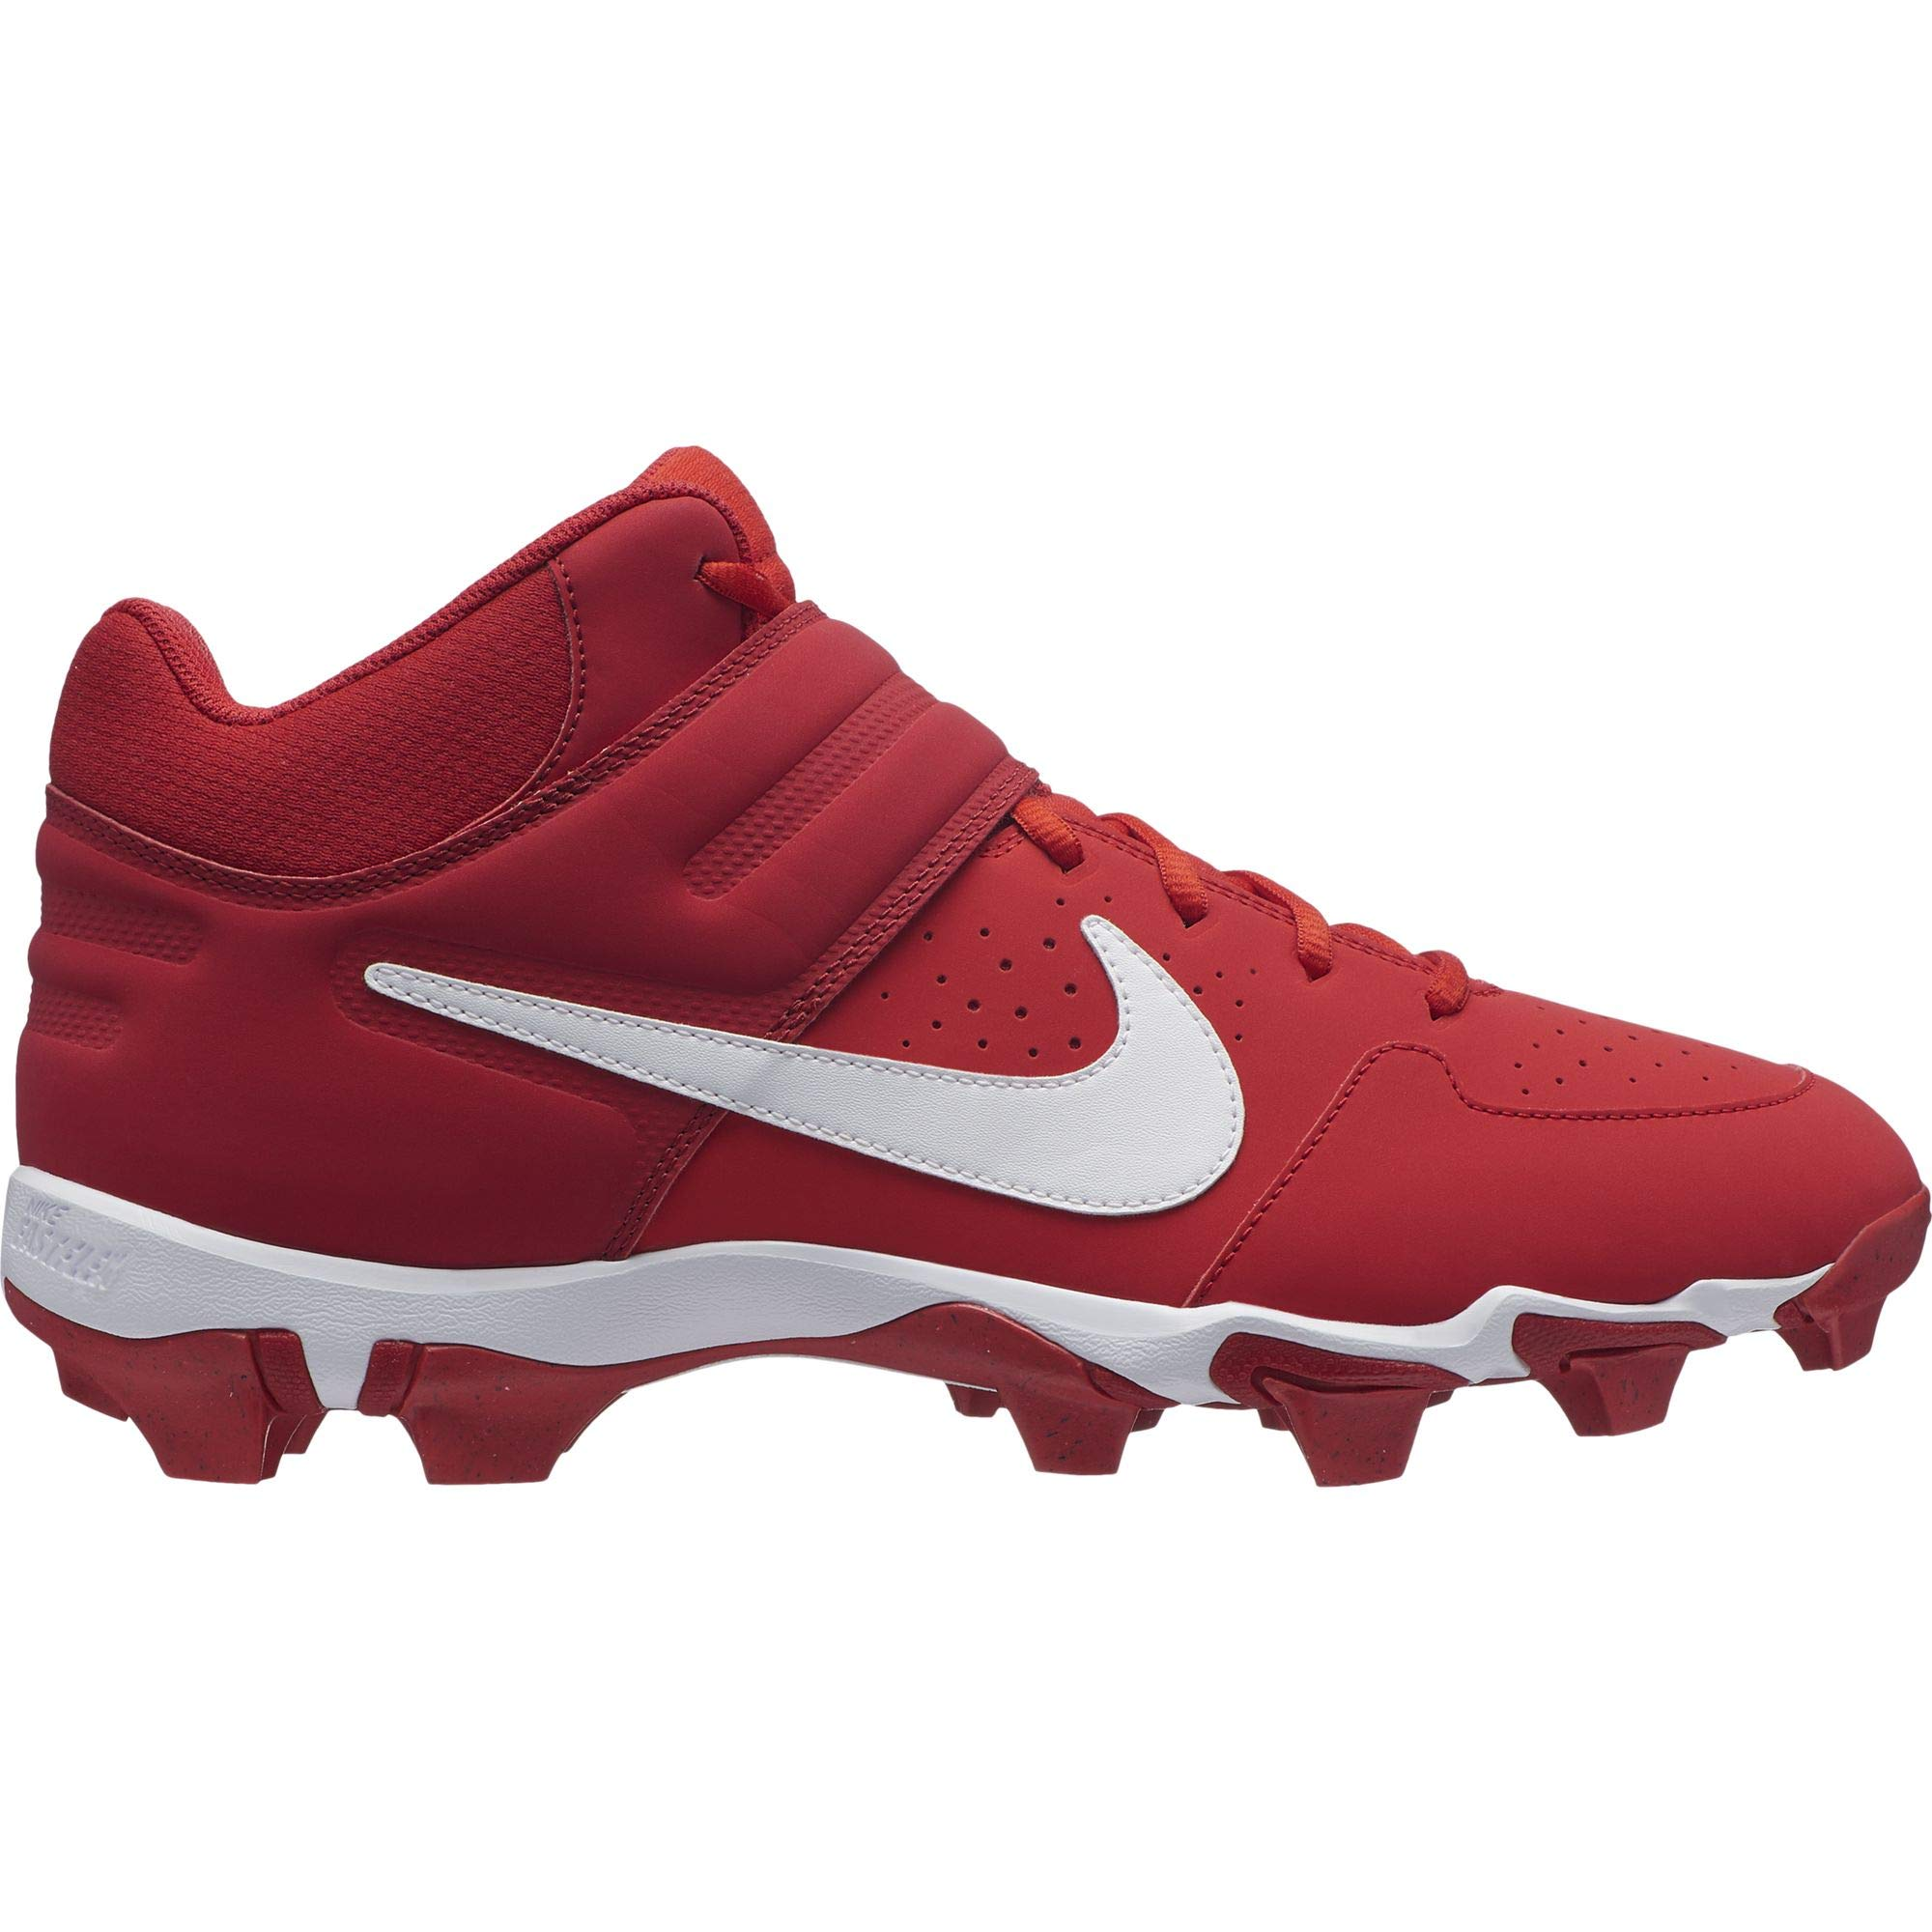 Nike Men's Alpha Huarache Varsity Keystone Mid Molded Baseball Cleat University Red/White Size 8.5 M US